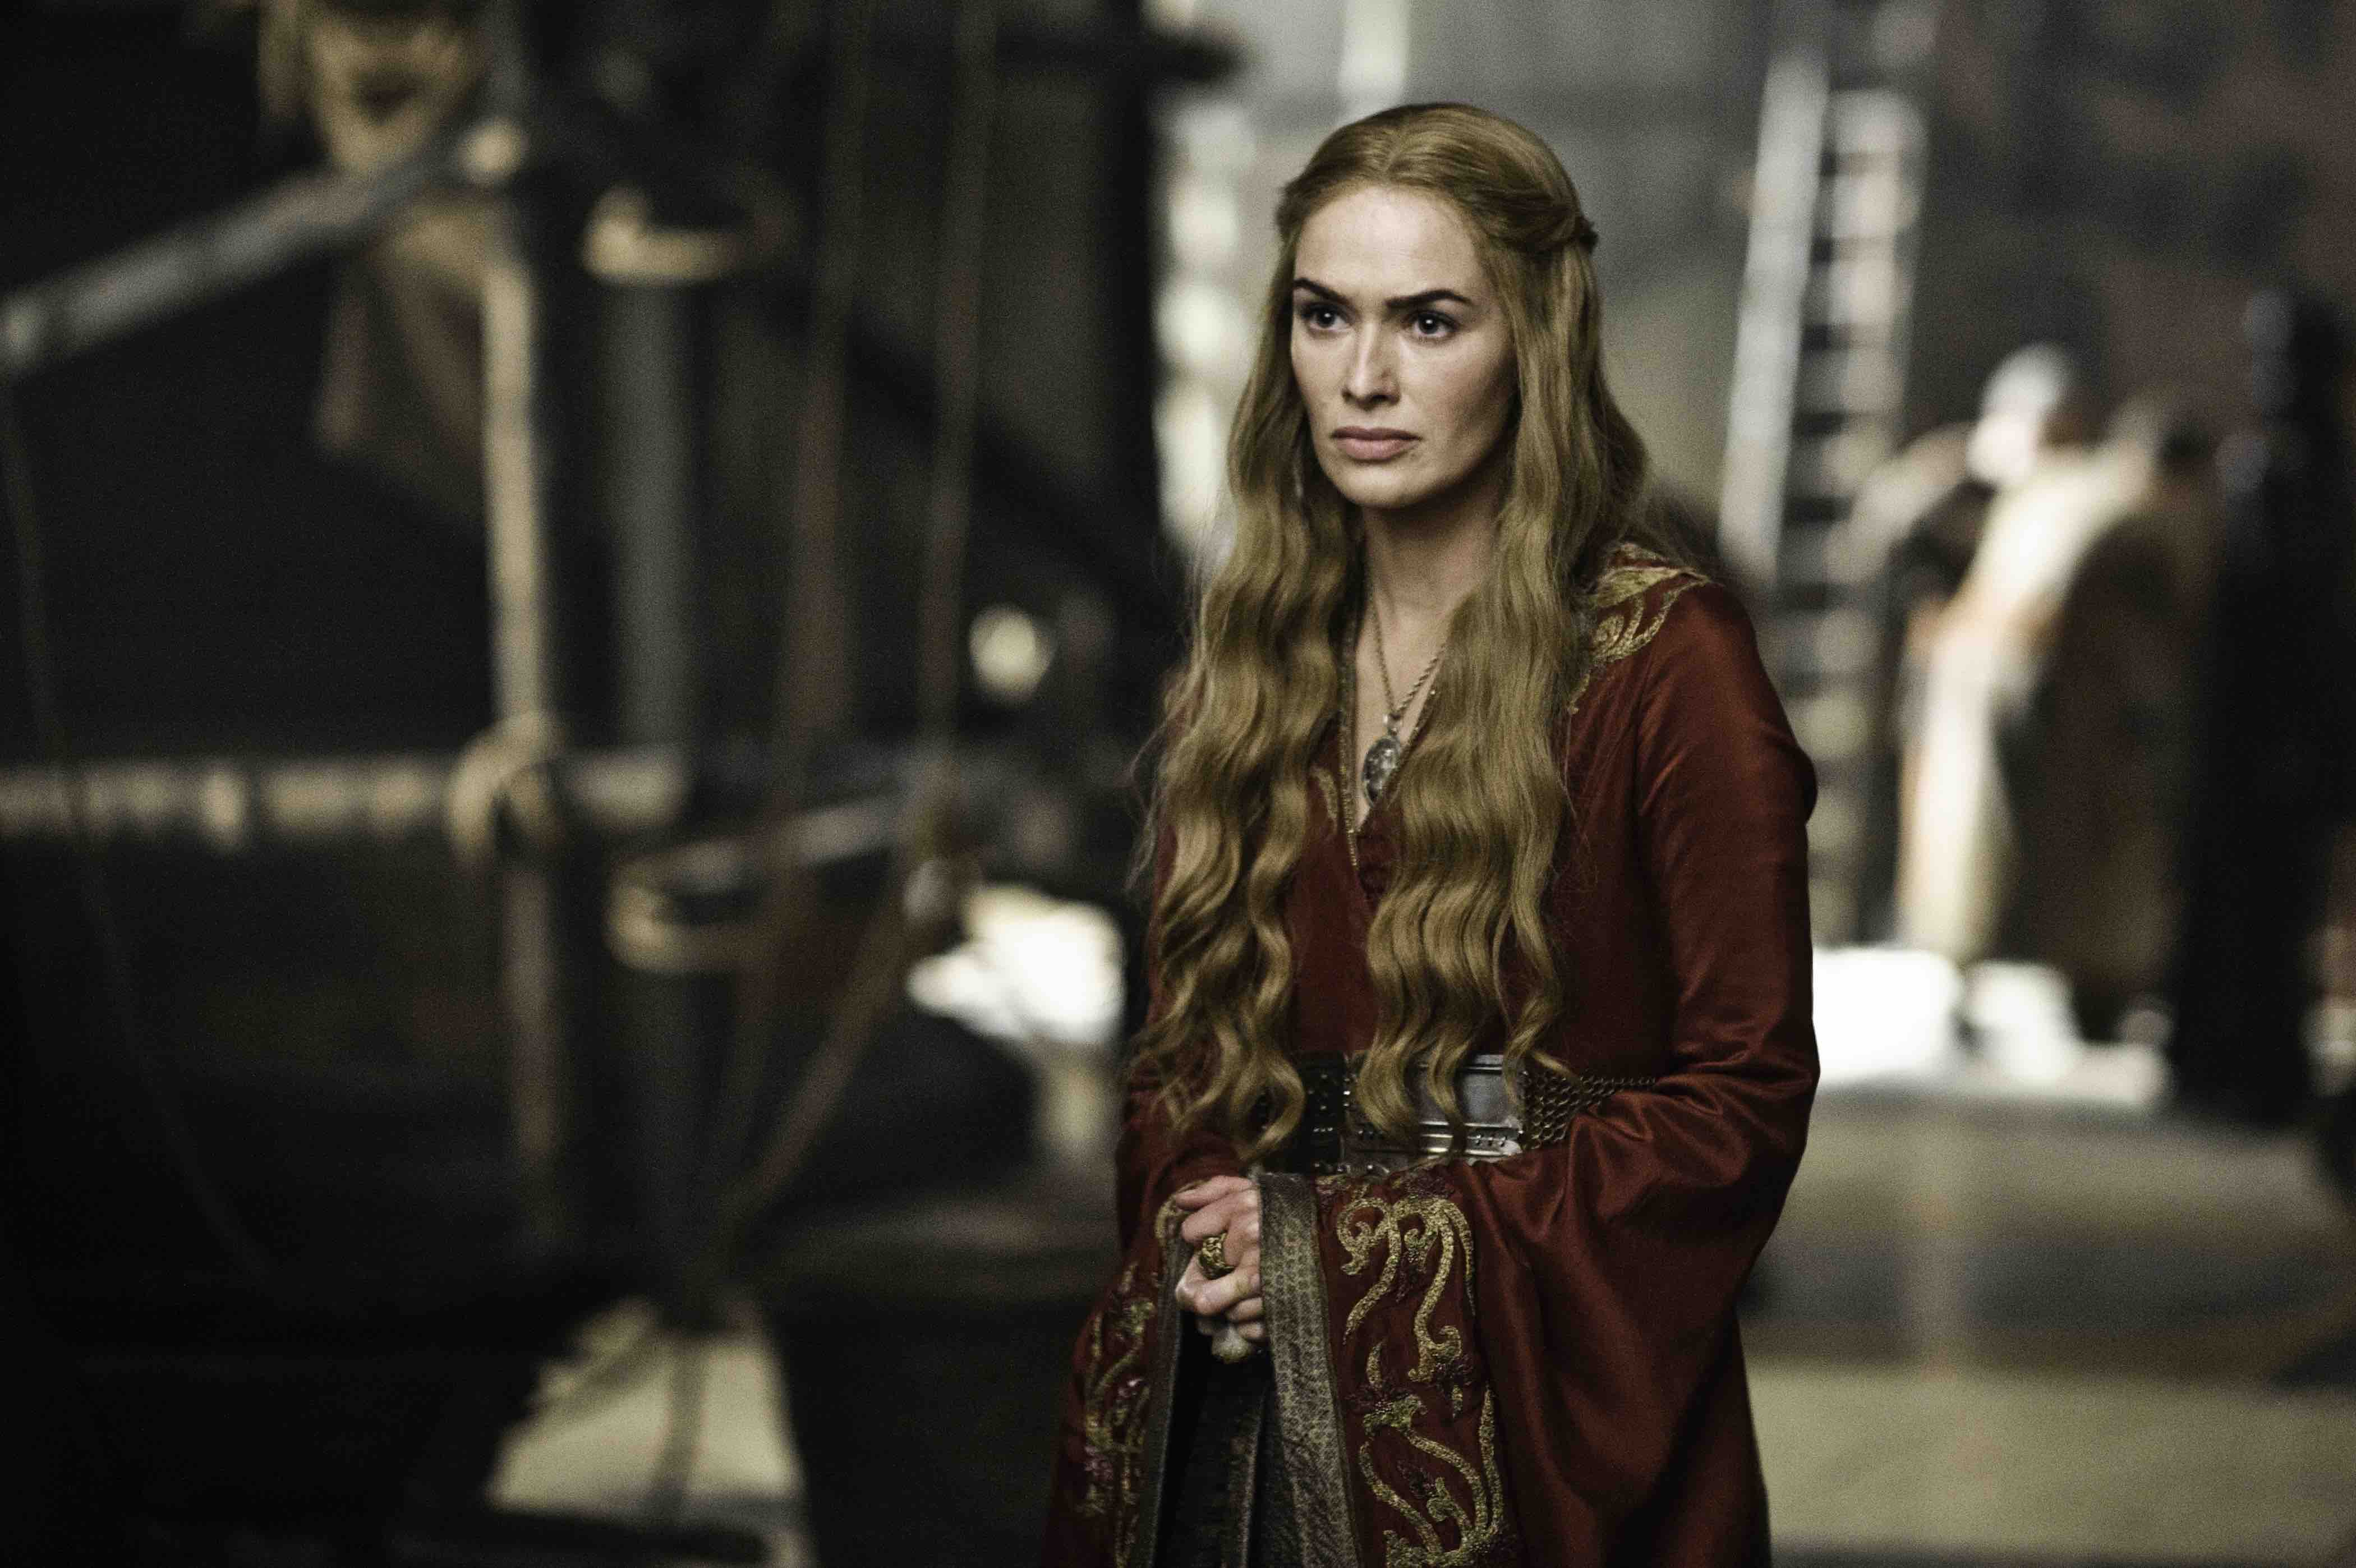 Lena-Headey-Cersei-Lannister-Game-Thrones